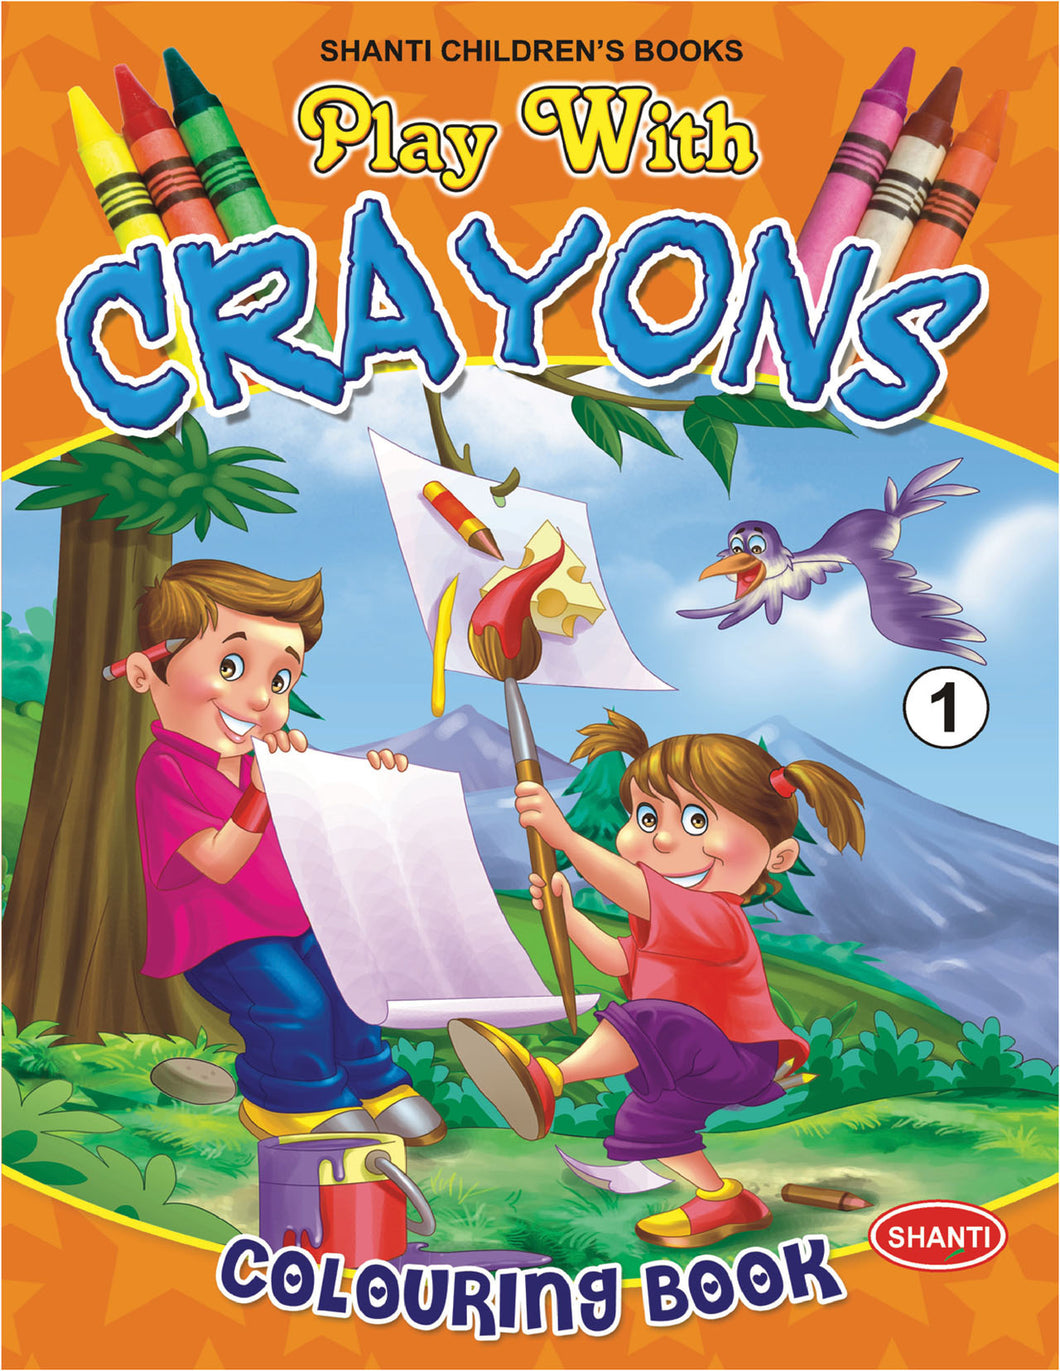 Colouring Books for Children - Play with Crayons - 1